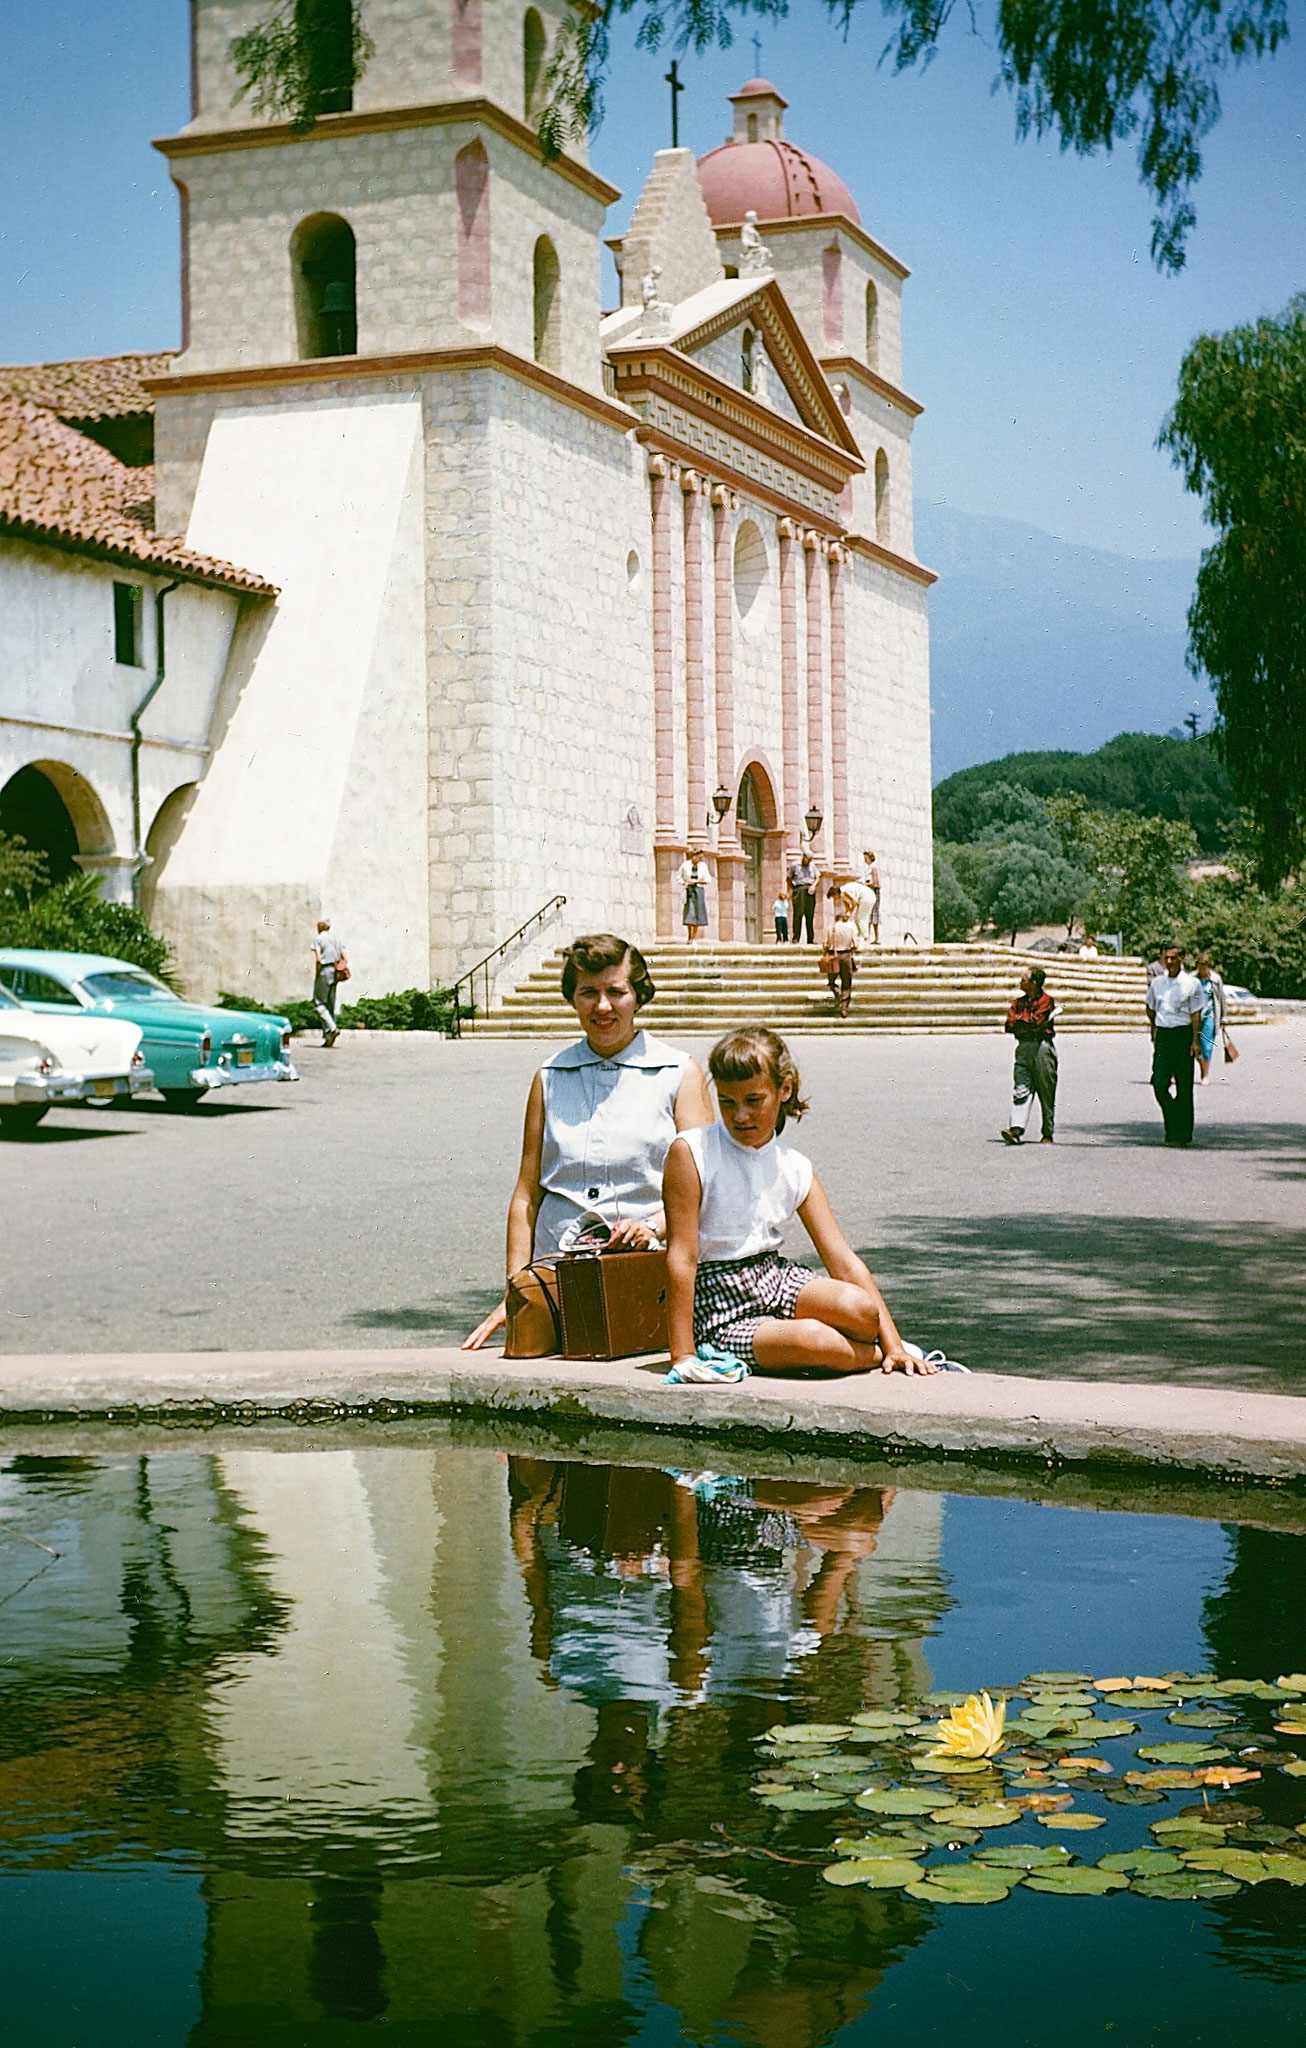 an old, Eleanor & Lorraine as a kid at the Santa Barbara mission, CA